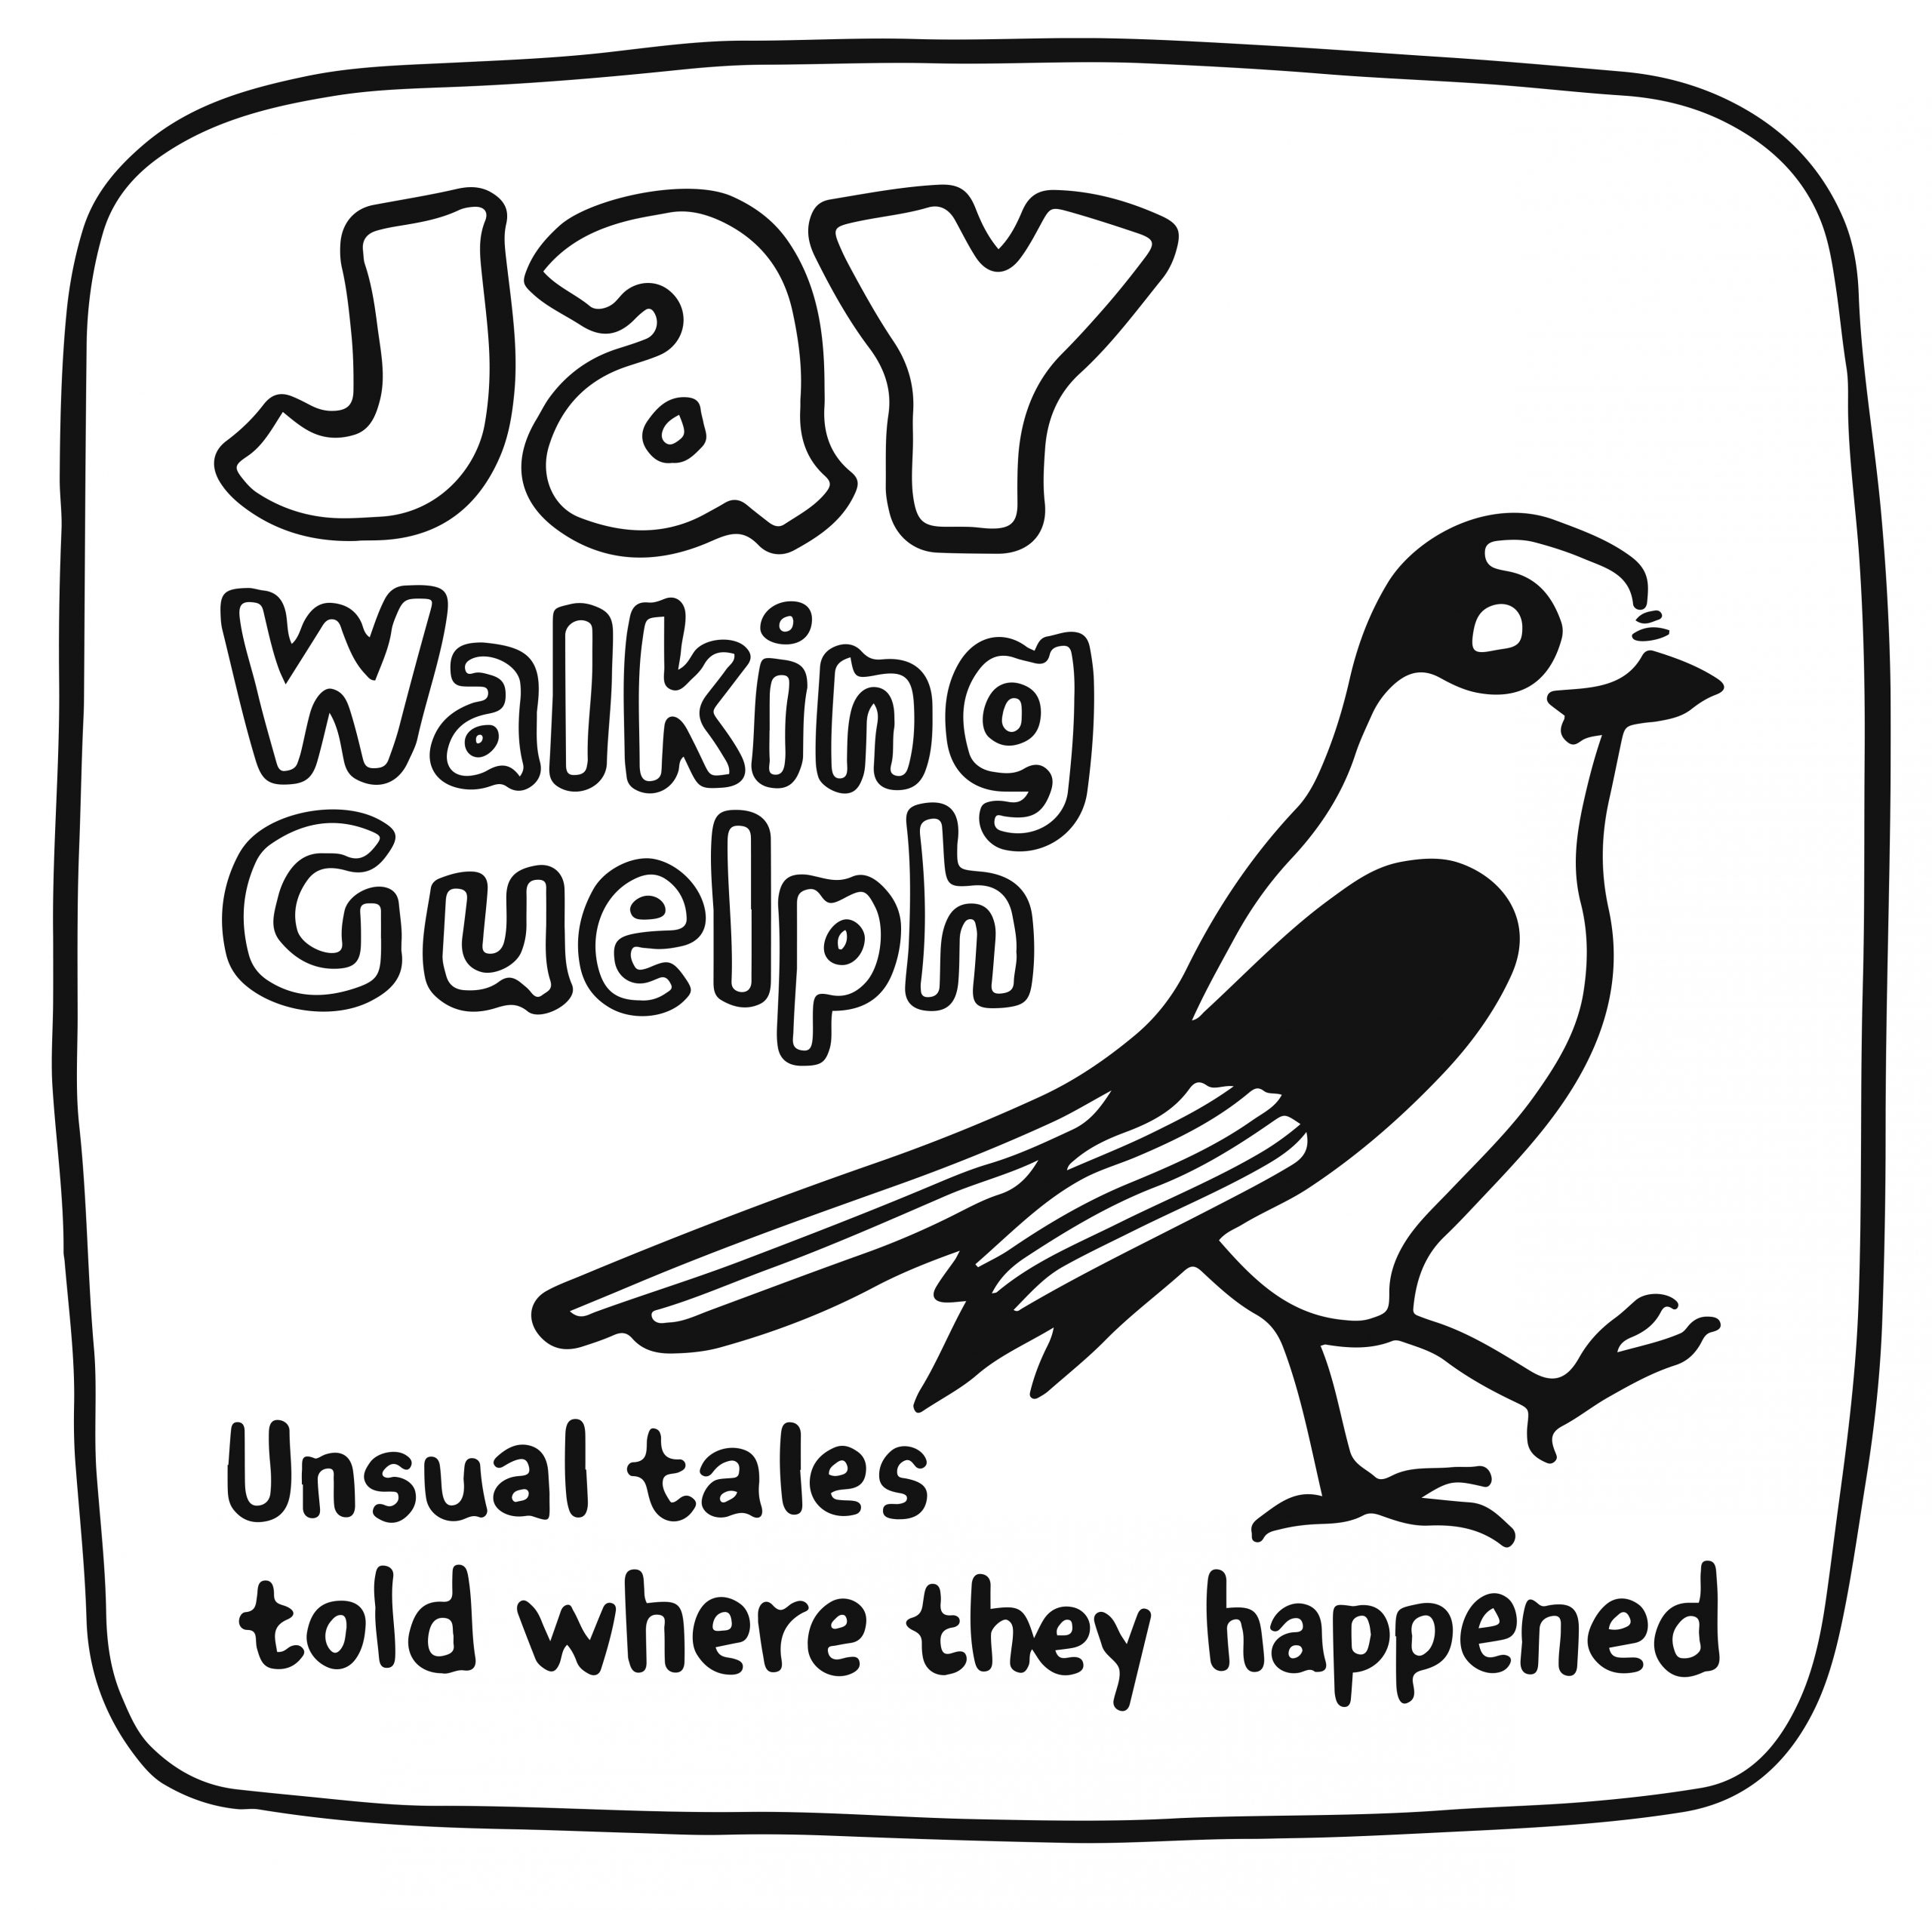 My initial concept sketch for the Jay Walking logo, showing a grey jay walking.